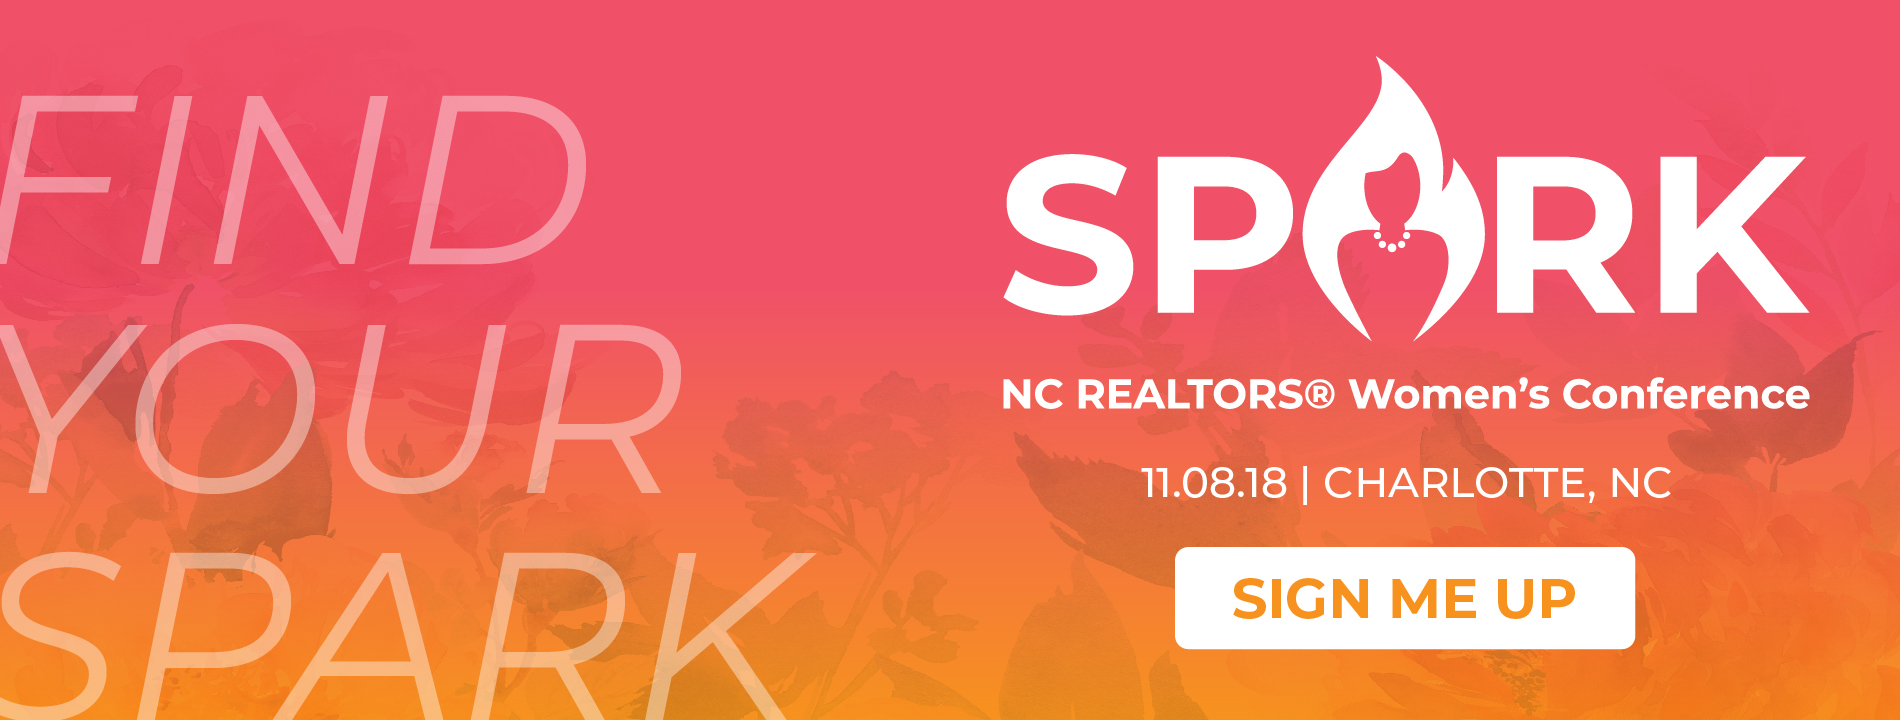 Spark NC REALTORS® Women's Conference 11.08.18 Charlotte, NC